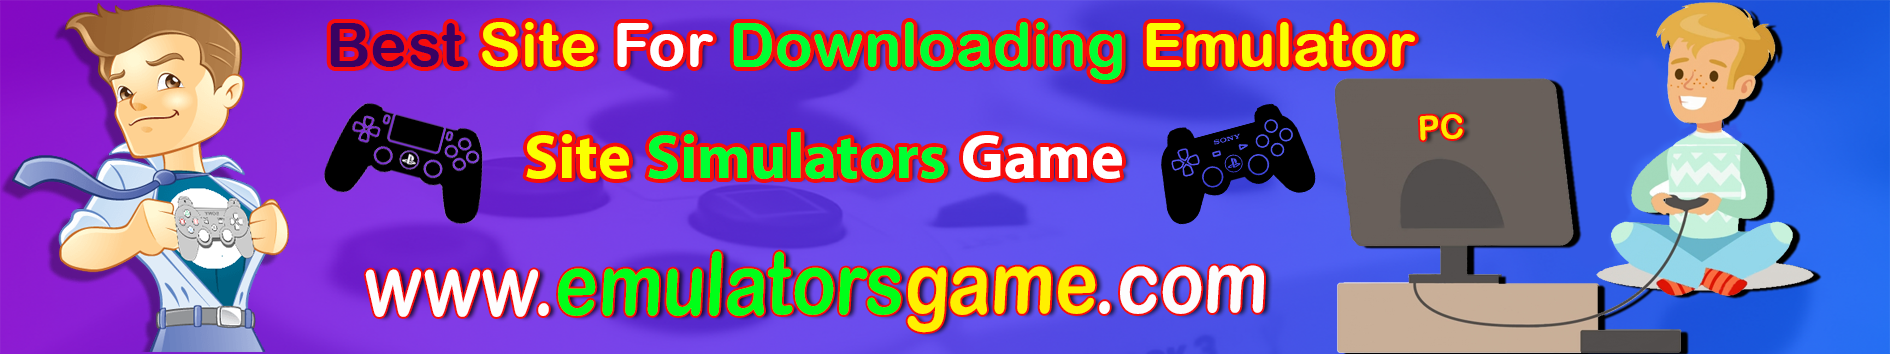 download emulator for ps5 , ps4 , ps3 , ps2 , ps1 , psp , xbox360 , xboxone , xbox series x